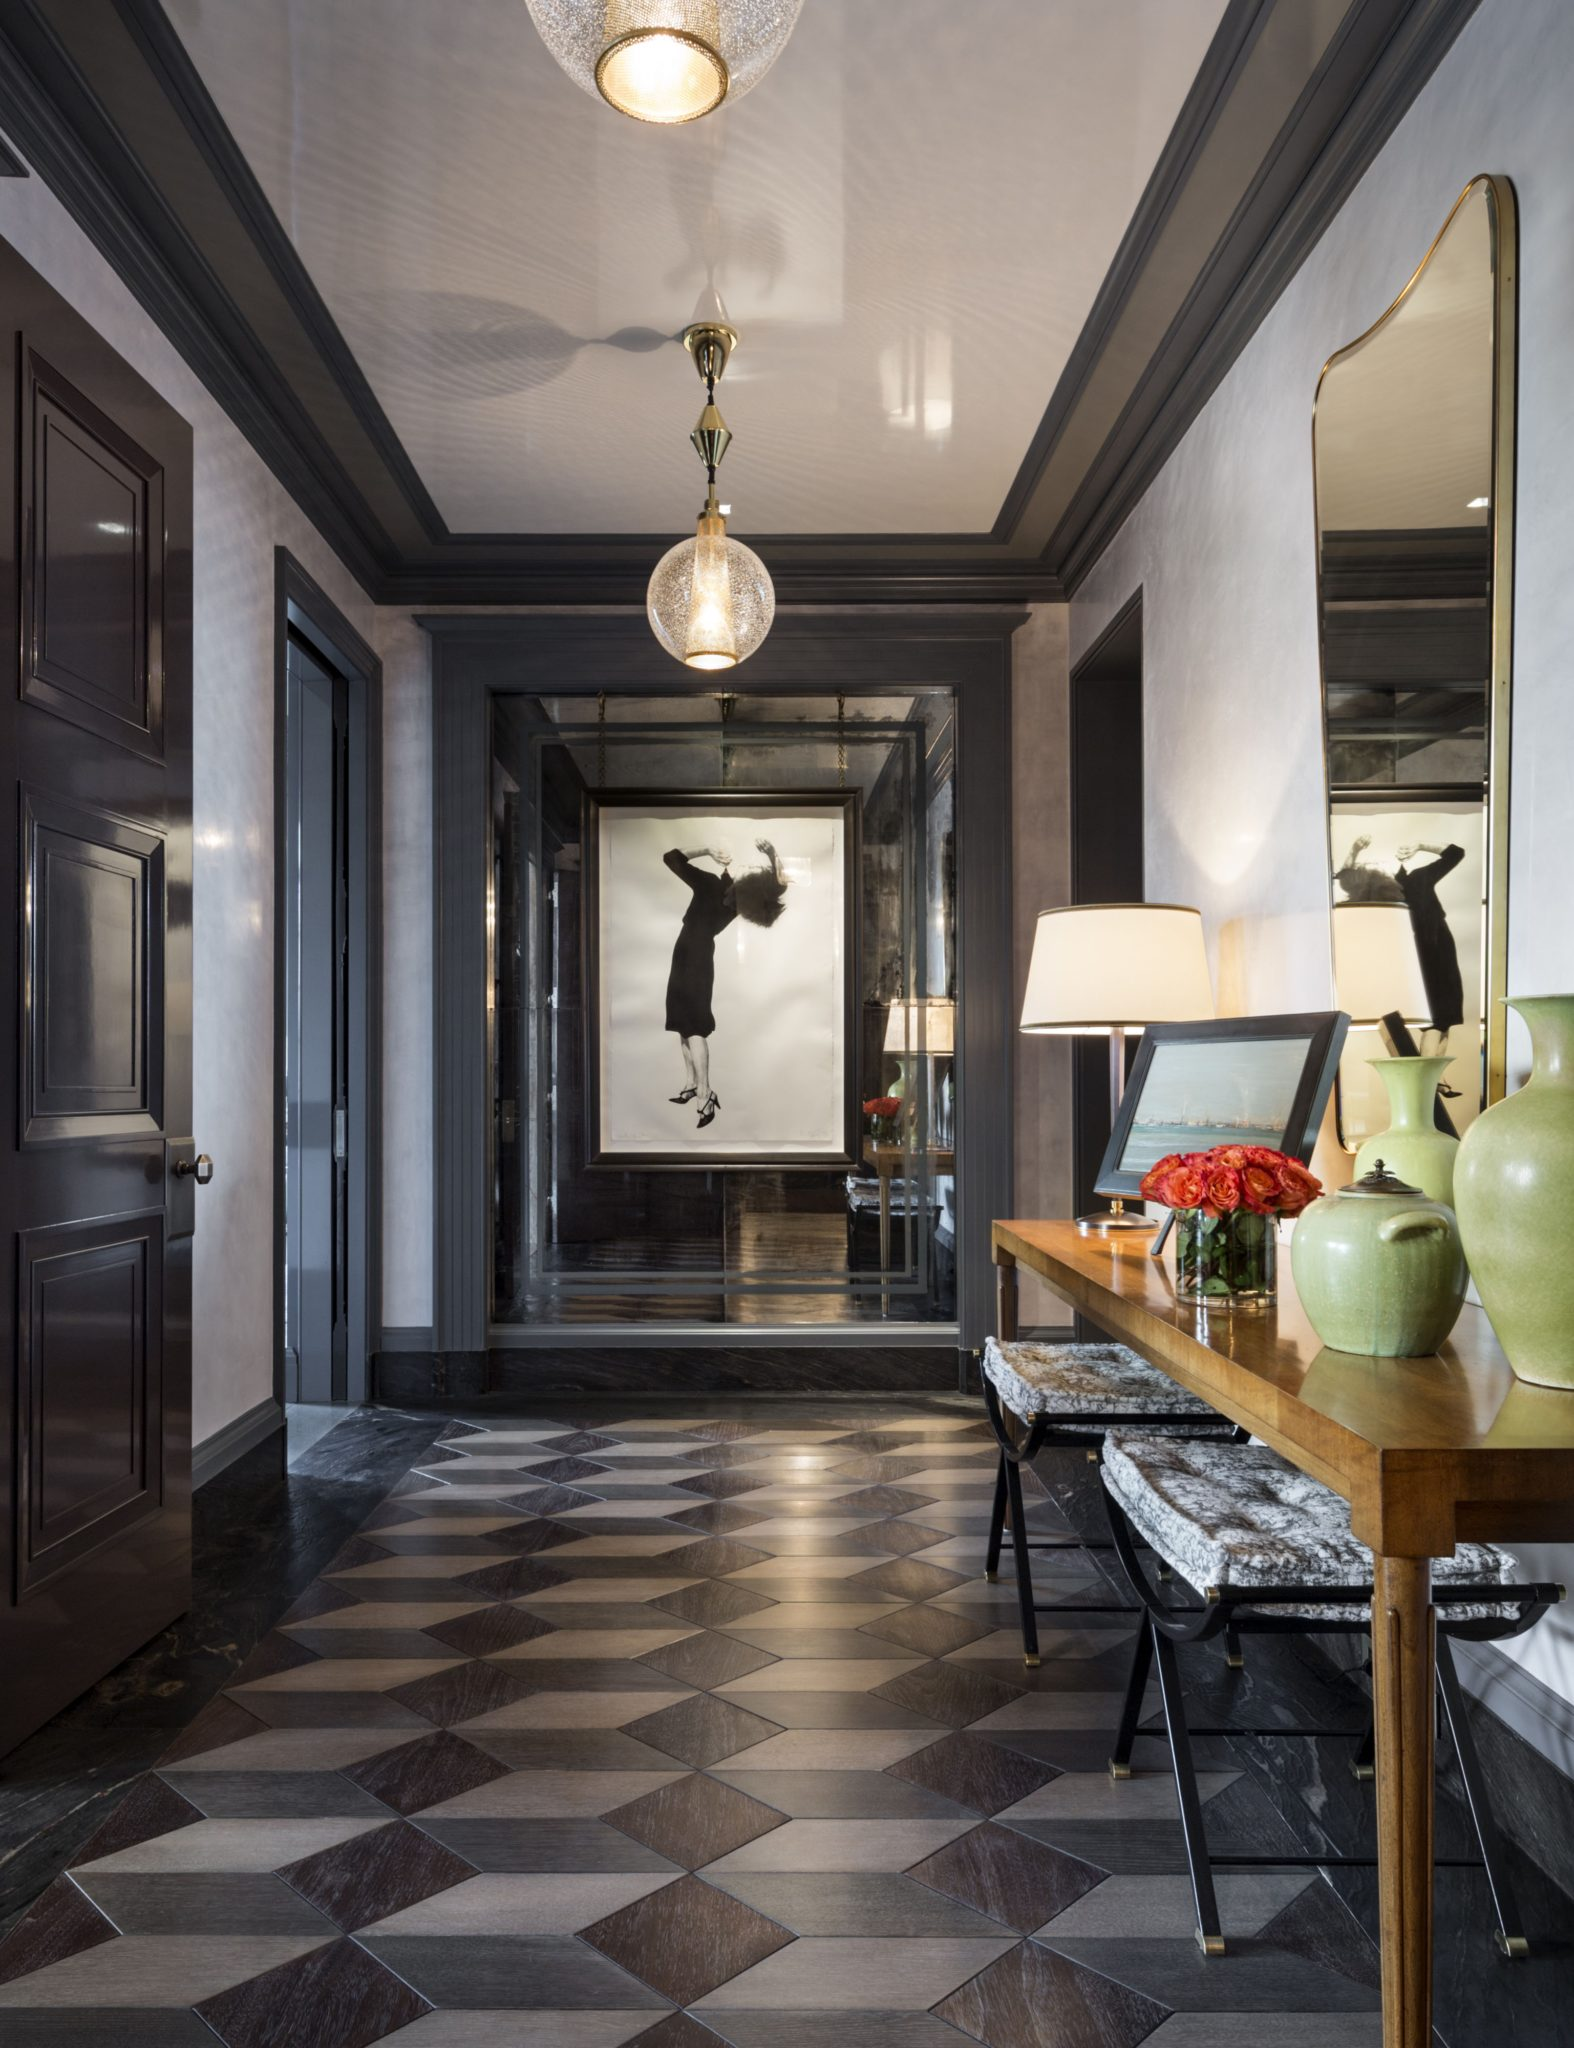 Gary Brewer, a partner at Robert A.M. Stern Architects, and Steven Gambrel of S.R. Gambrel, Inc., collaborated on the renovation of a stunning Manhattan penthouse. Therefreshed entry hall, featuring new graphic marquetry and new casings and trim, opens to the living room, dining room, and library.